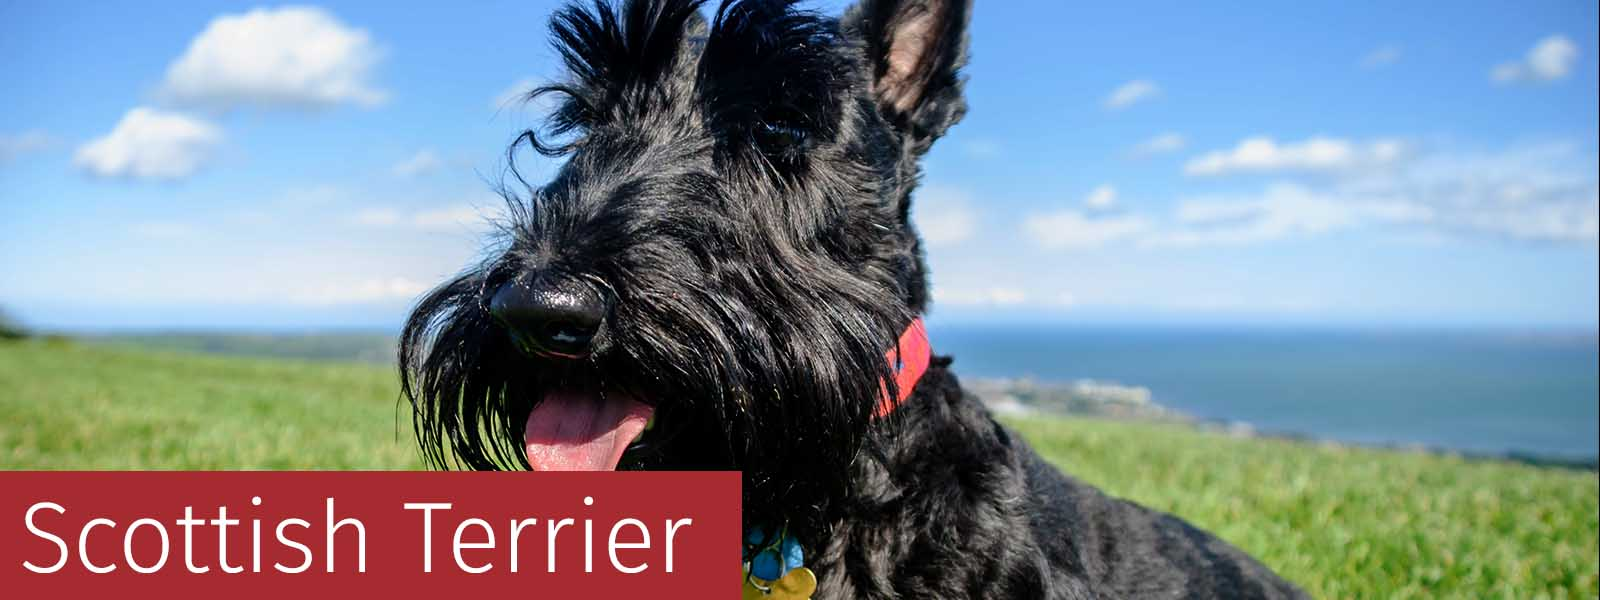 Scottish Terrier Gifts